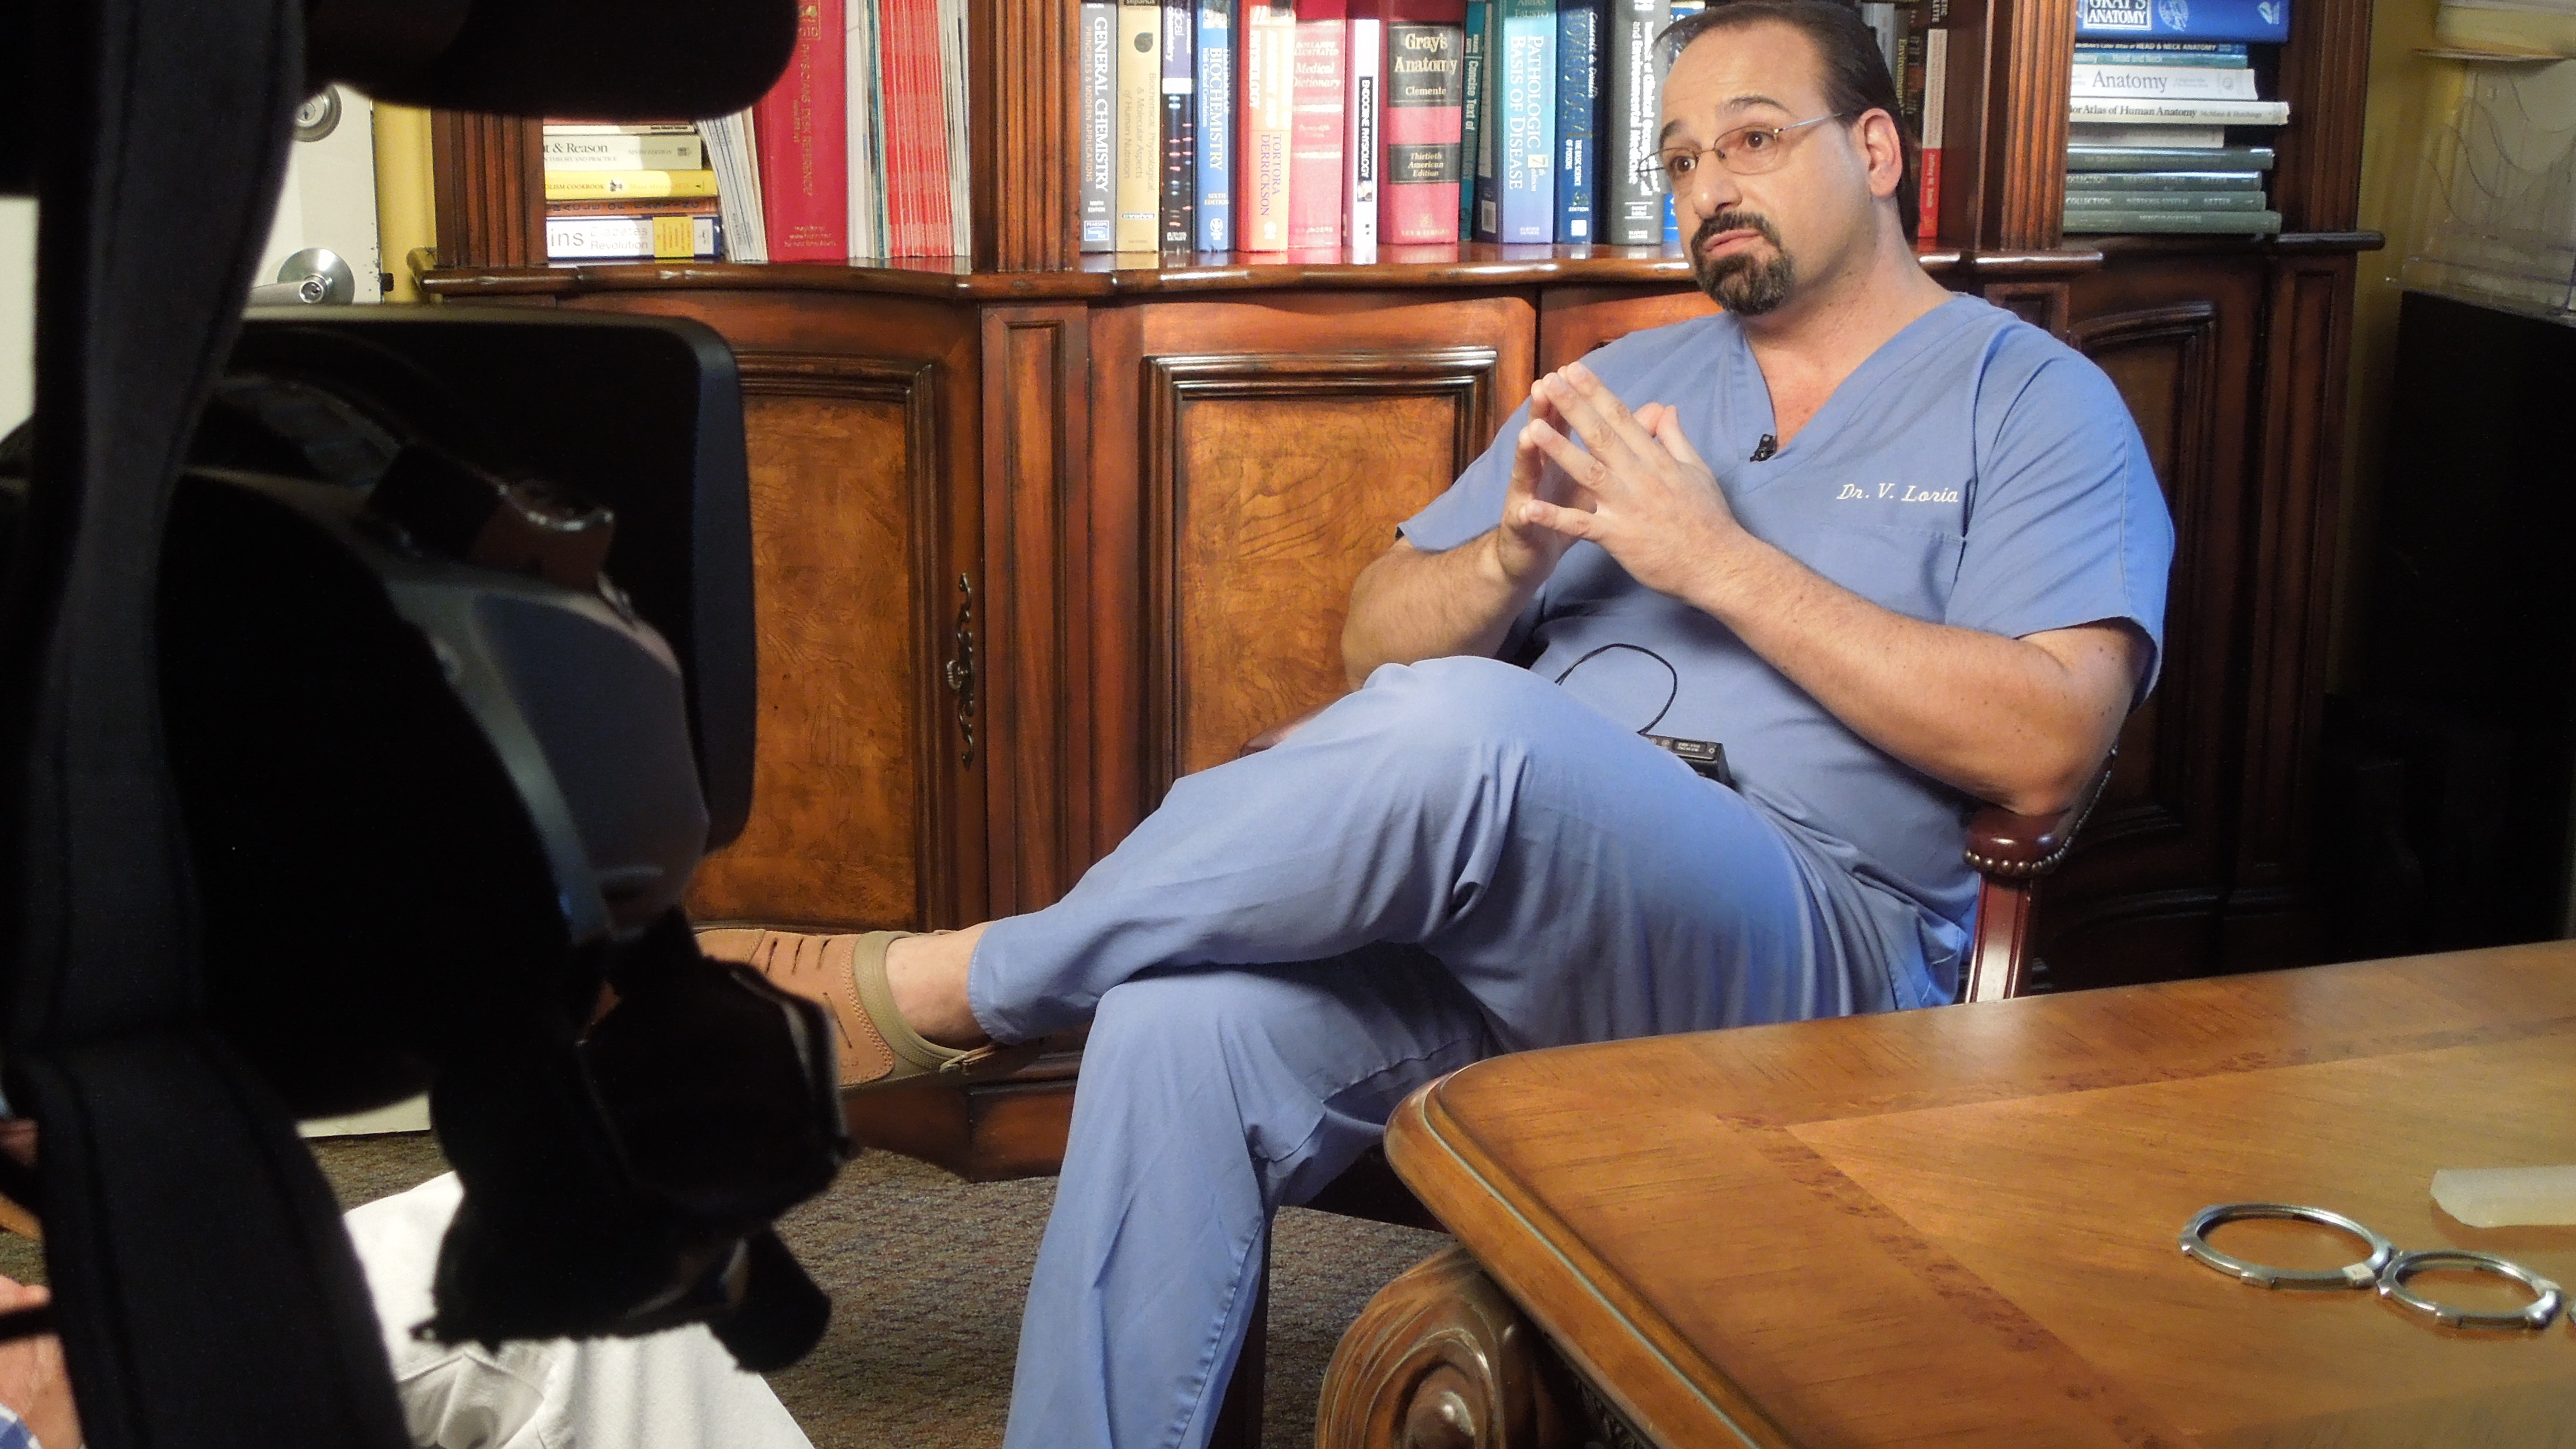 Male Enhancement: Dr. Victor Loria, a Miami Florida based Cosmetic Surgeon, being interviewed by Miami News Station. Dr. Loria performs minimally invasive Penis Enlargement Medical Procedure using Permanent Cosmetic Fillers. No Surgery, No General Anesthesia, No High Risks associated with traditional surgical procedures. A very comfortable and affordable procedure. Patient and Partner satisfaction very high. For Consultation Call 1 -877-DR–LORIA or 877-375–6742 Email: info@LoriaMedical.com or visit us at www.LoriaMedical.com